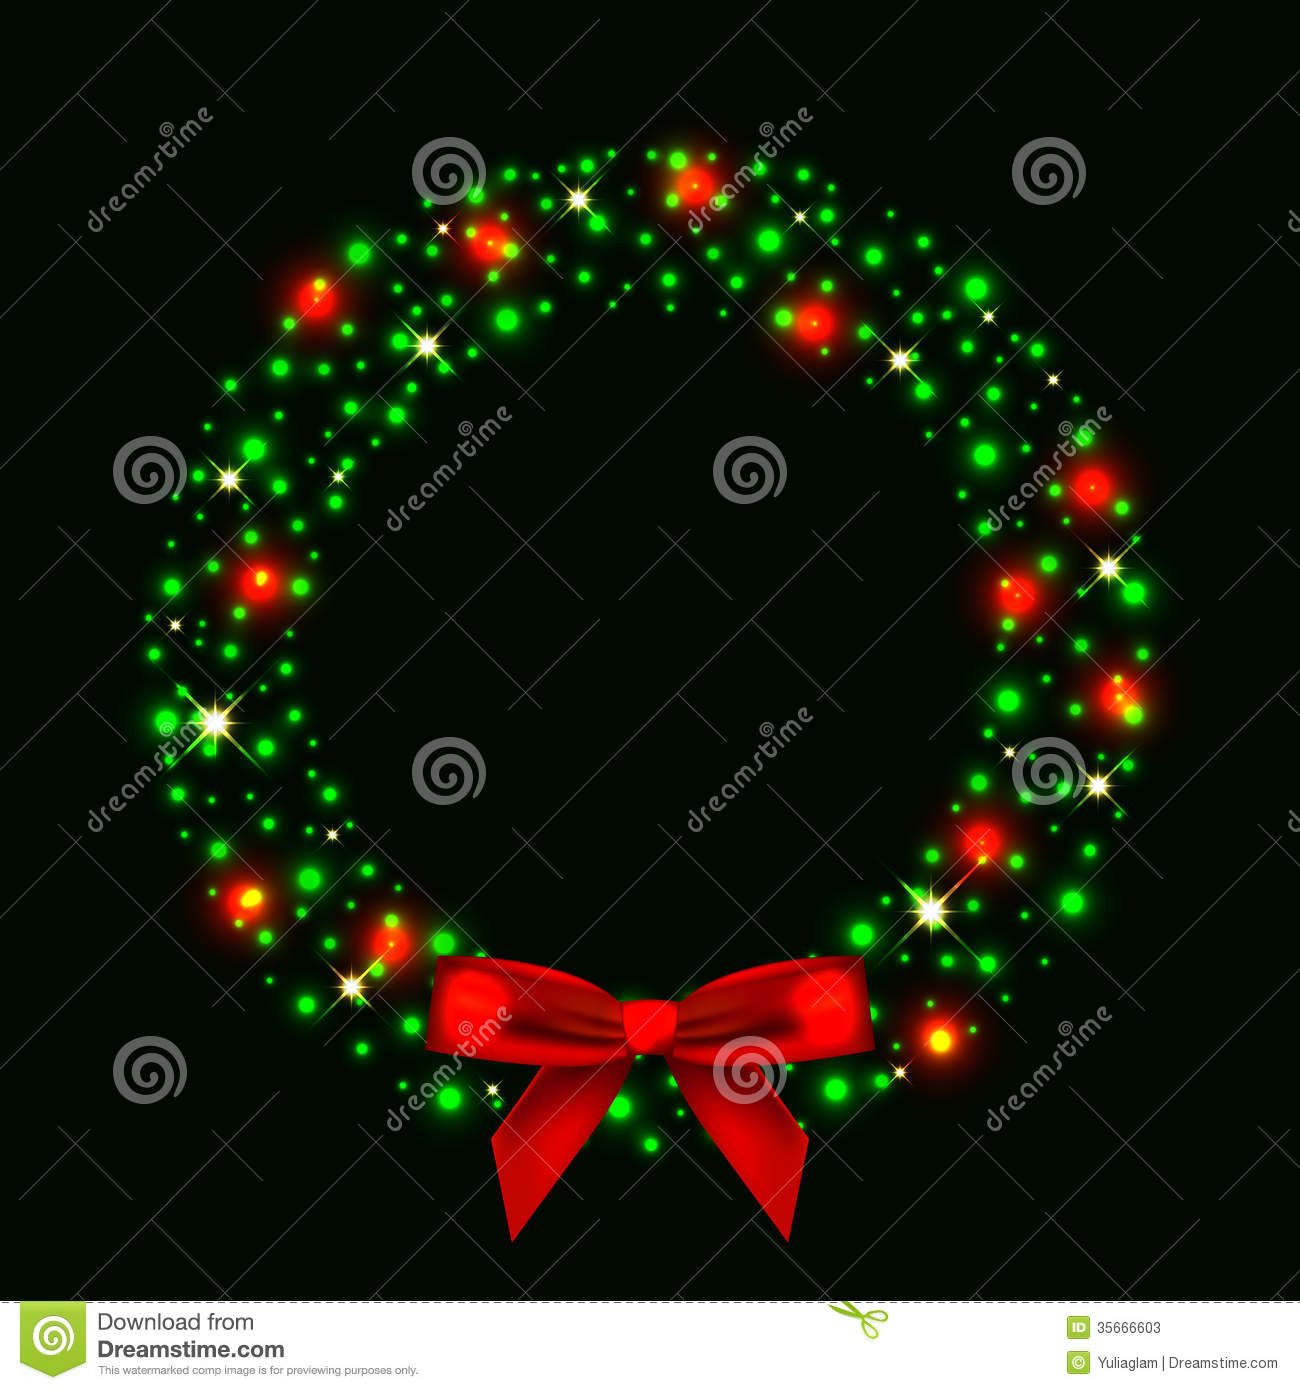 Lighted Christmas Wreaths Outdoor